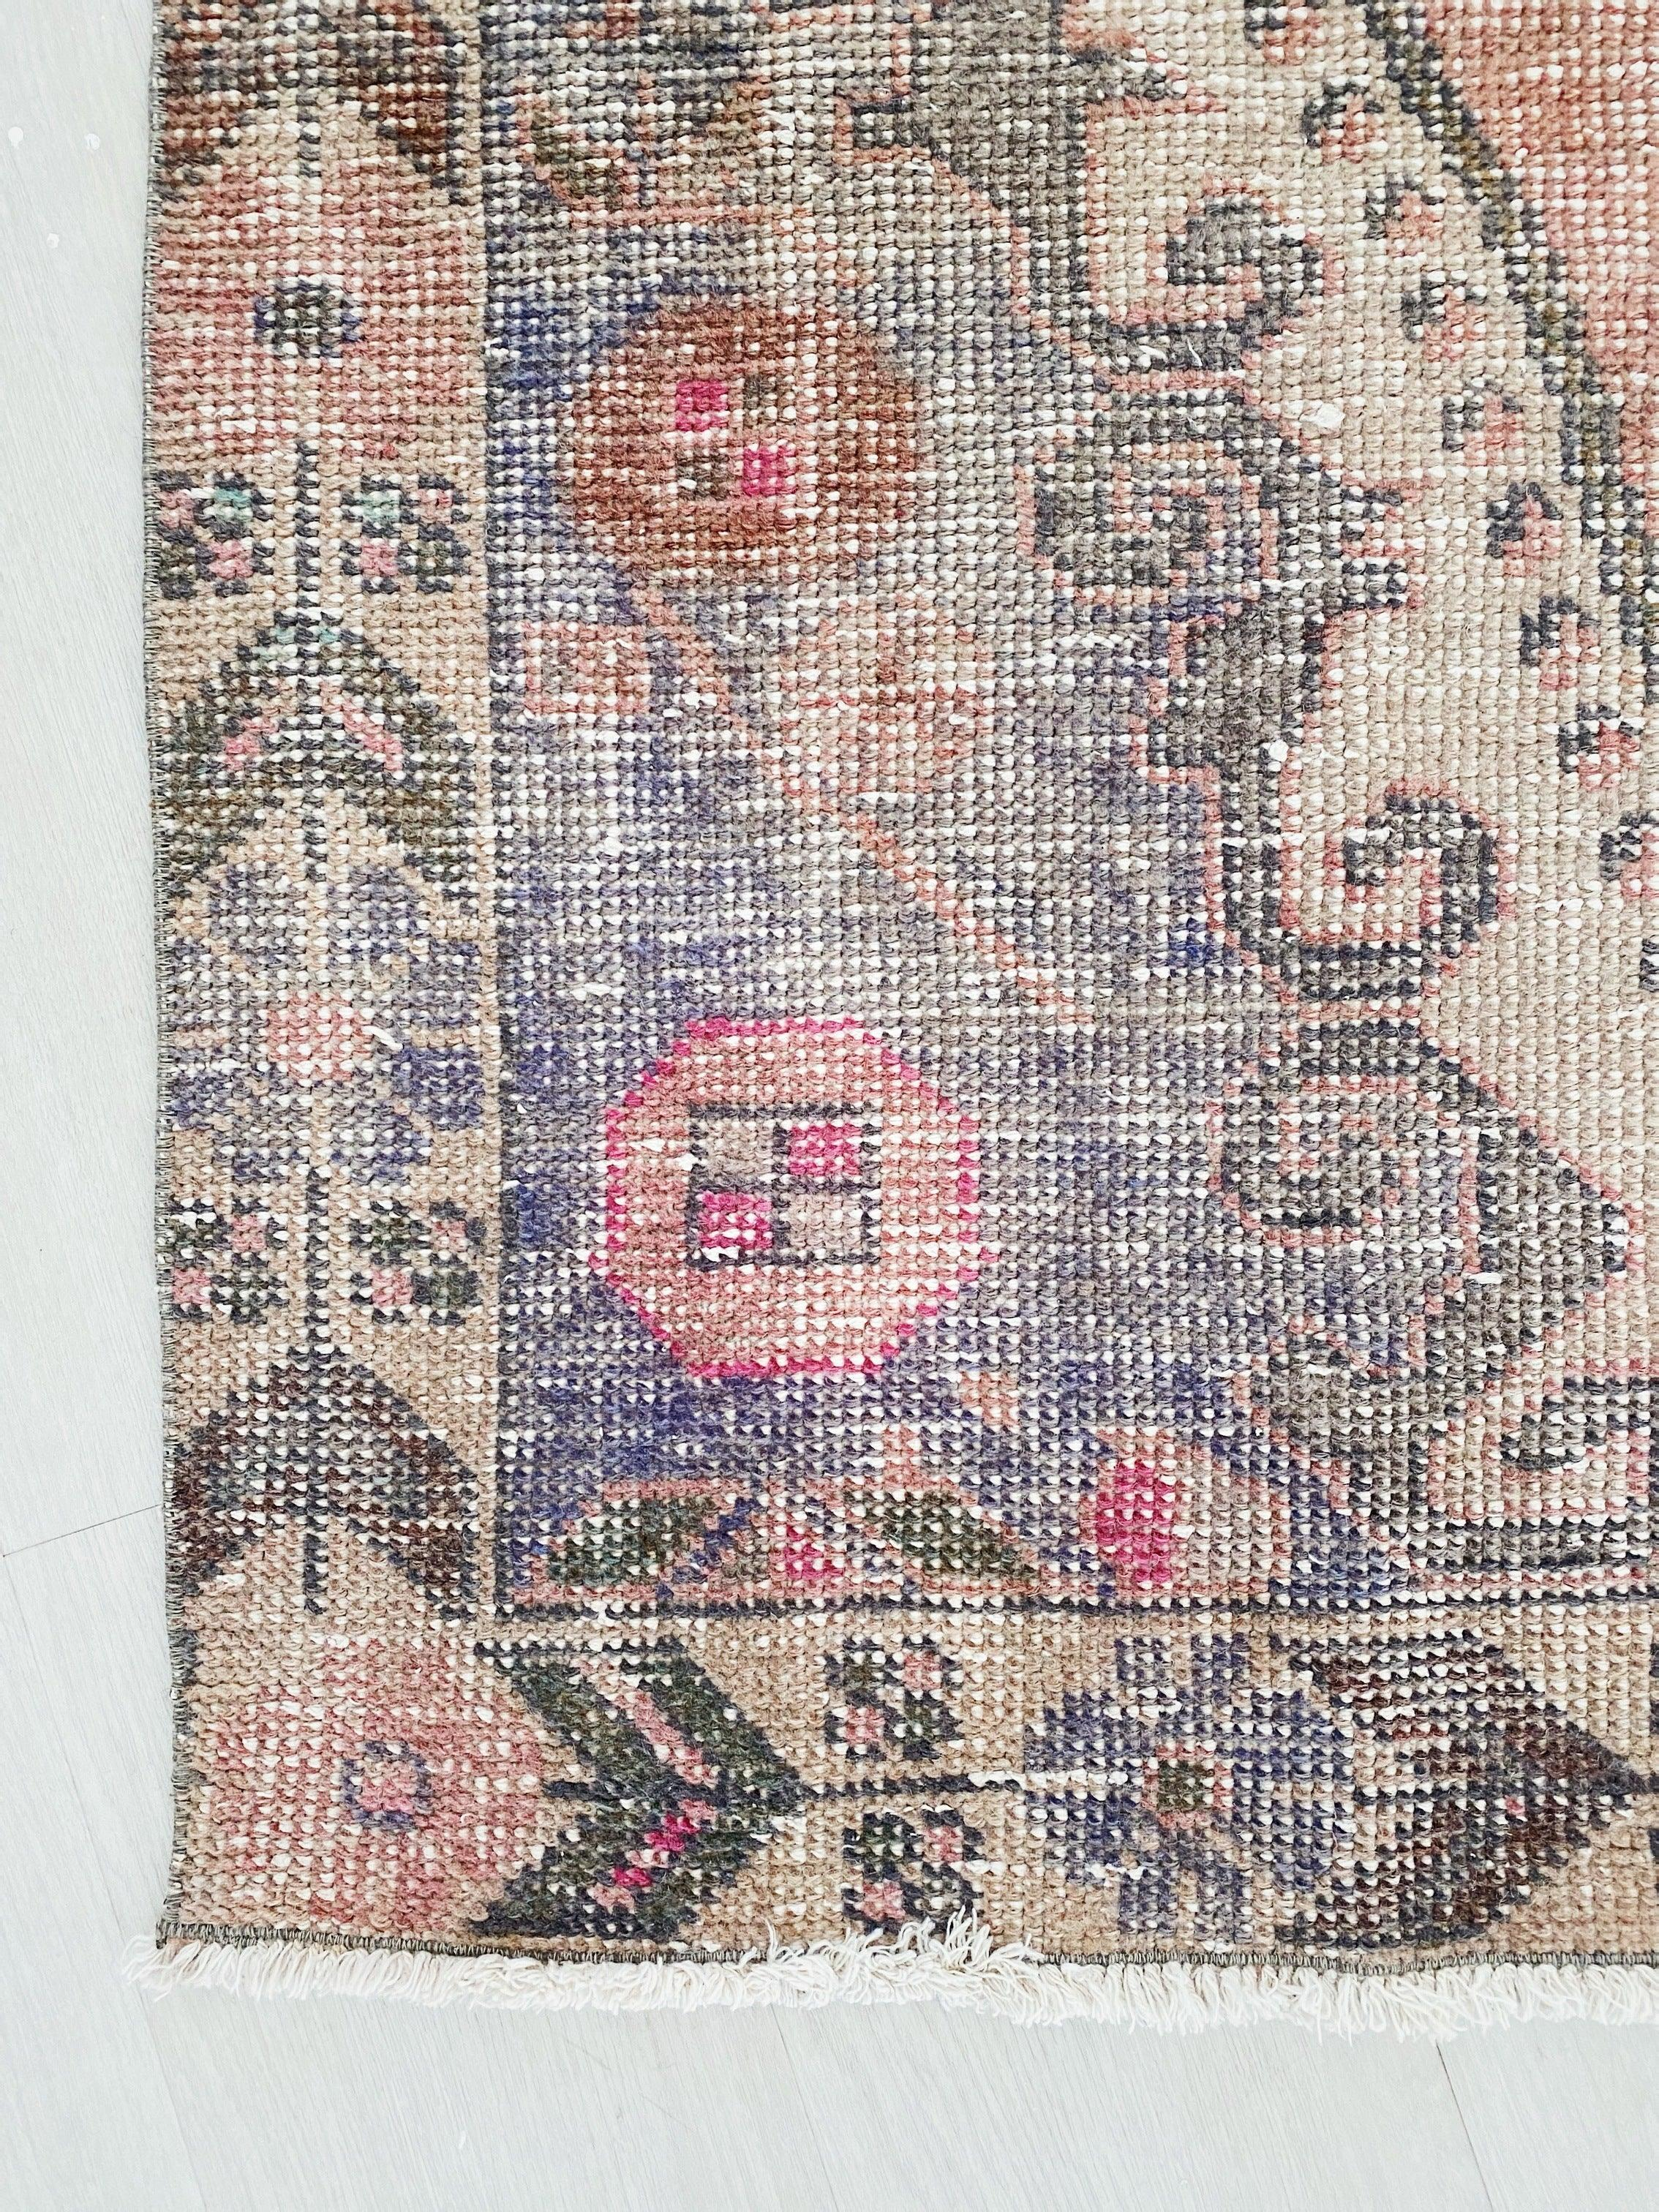 Amanda Faded Apricot Taupe Turkish One of A Kind Accent Rug - Lustere Living